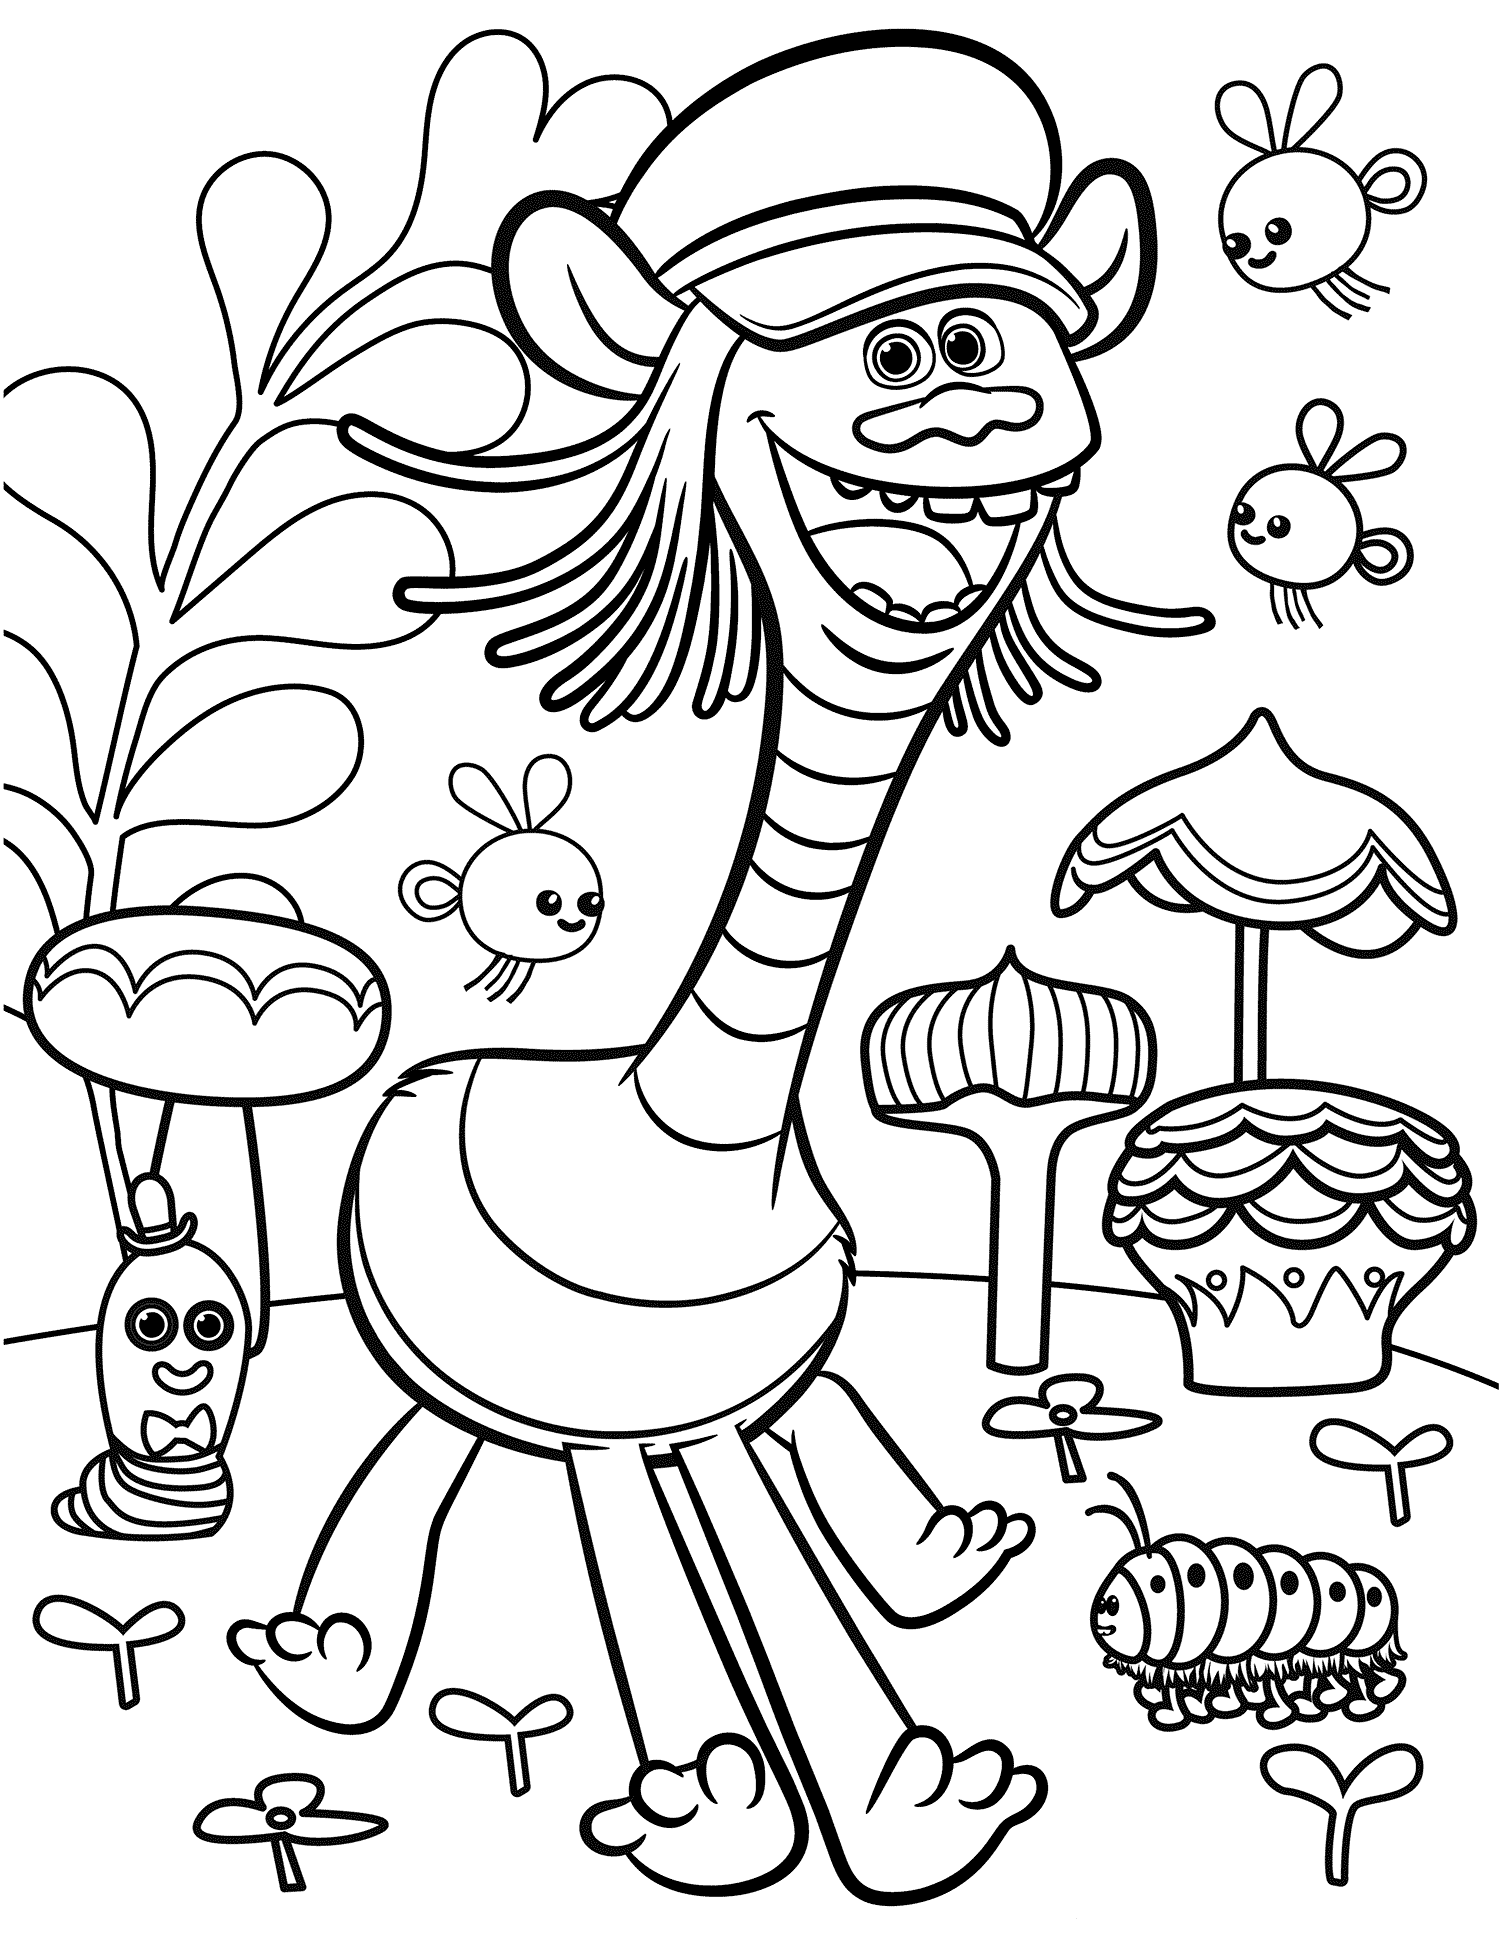 This is an image of Insane Troll Coloring Pages To Print